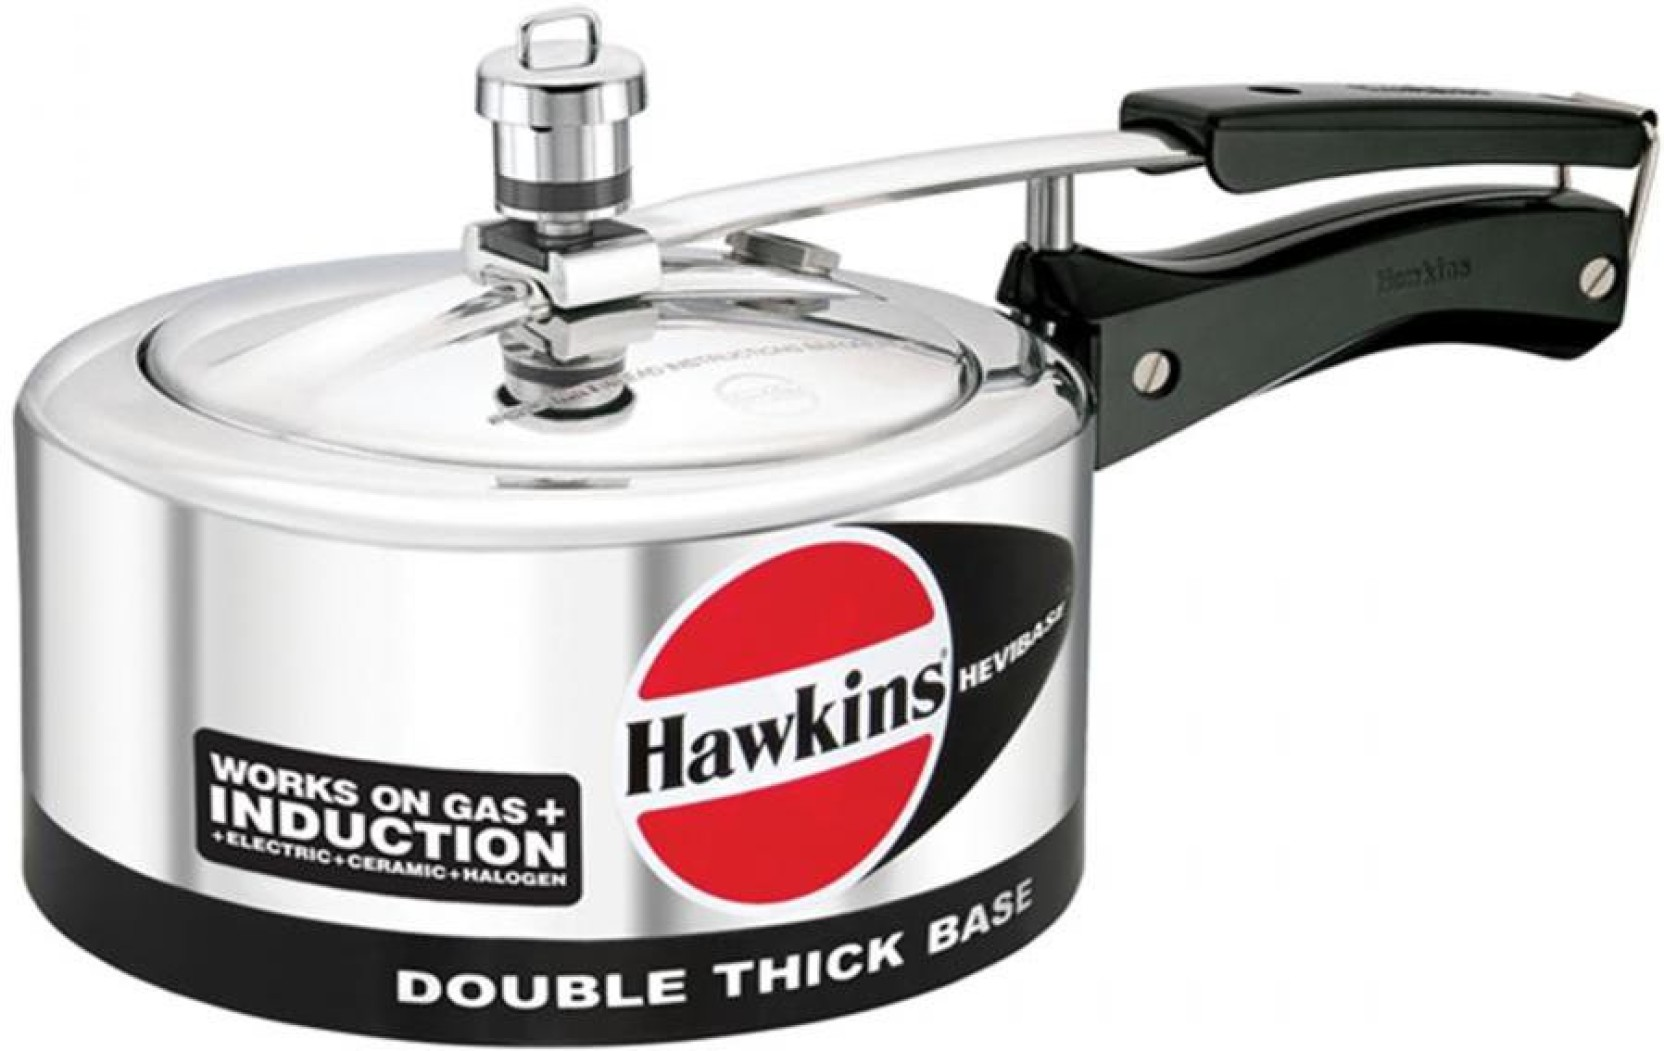 Hawkins Hevibase 3 L Pressure Cooker With Induction Bottom Price In Buy Circuit Boardelectric Cookerinduction Share